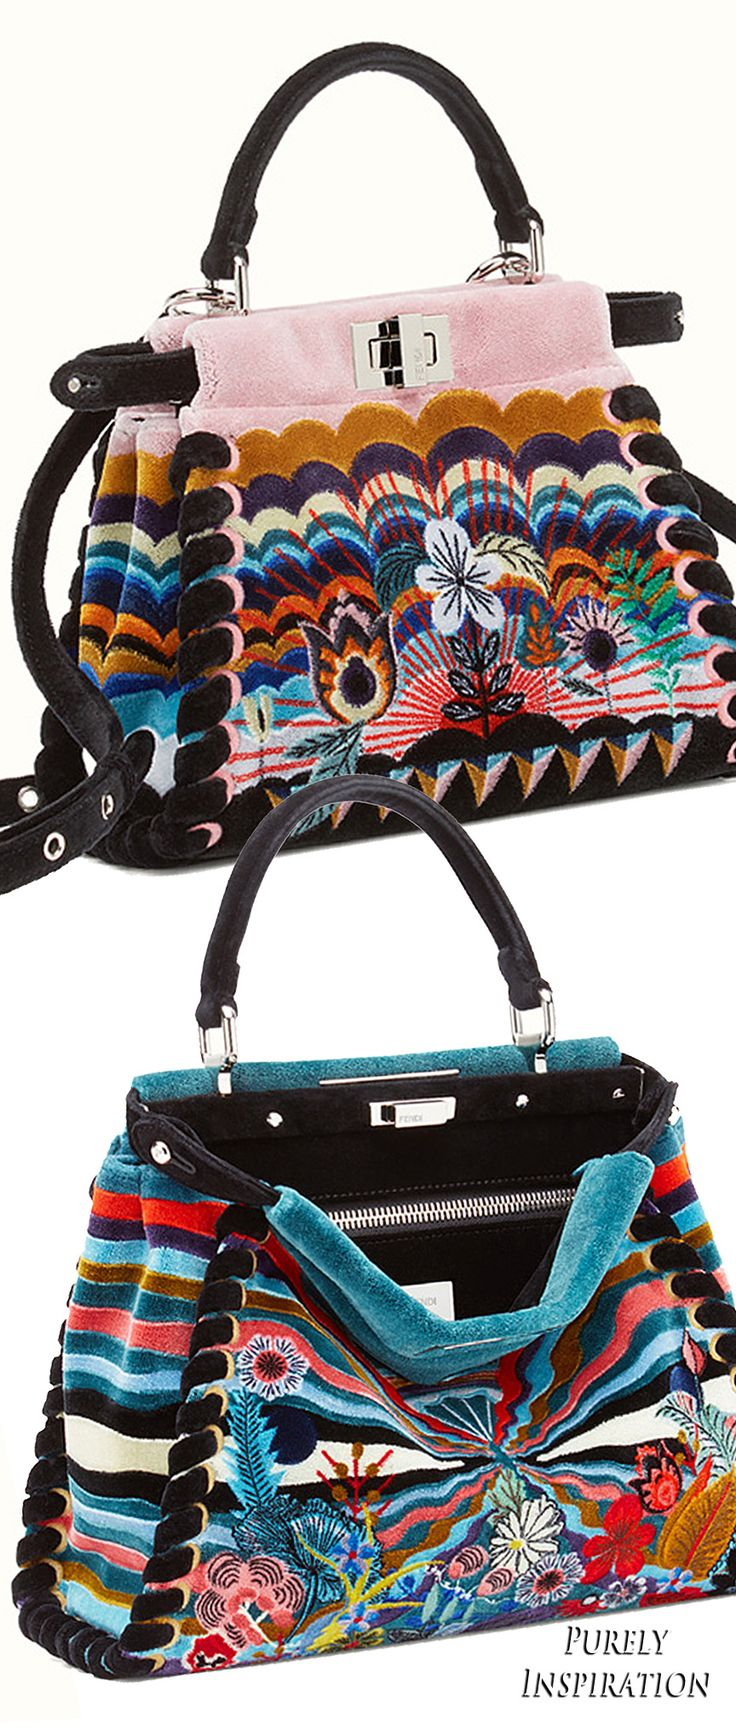 Fendi Peekaboo Handbags | Purely Inspiration